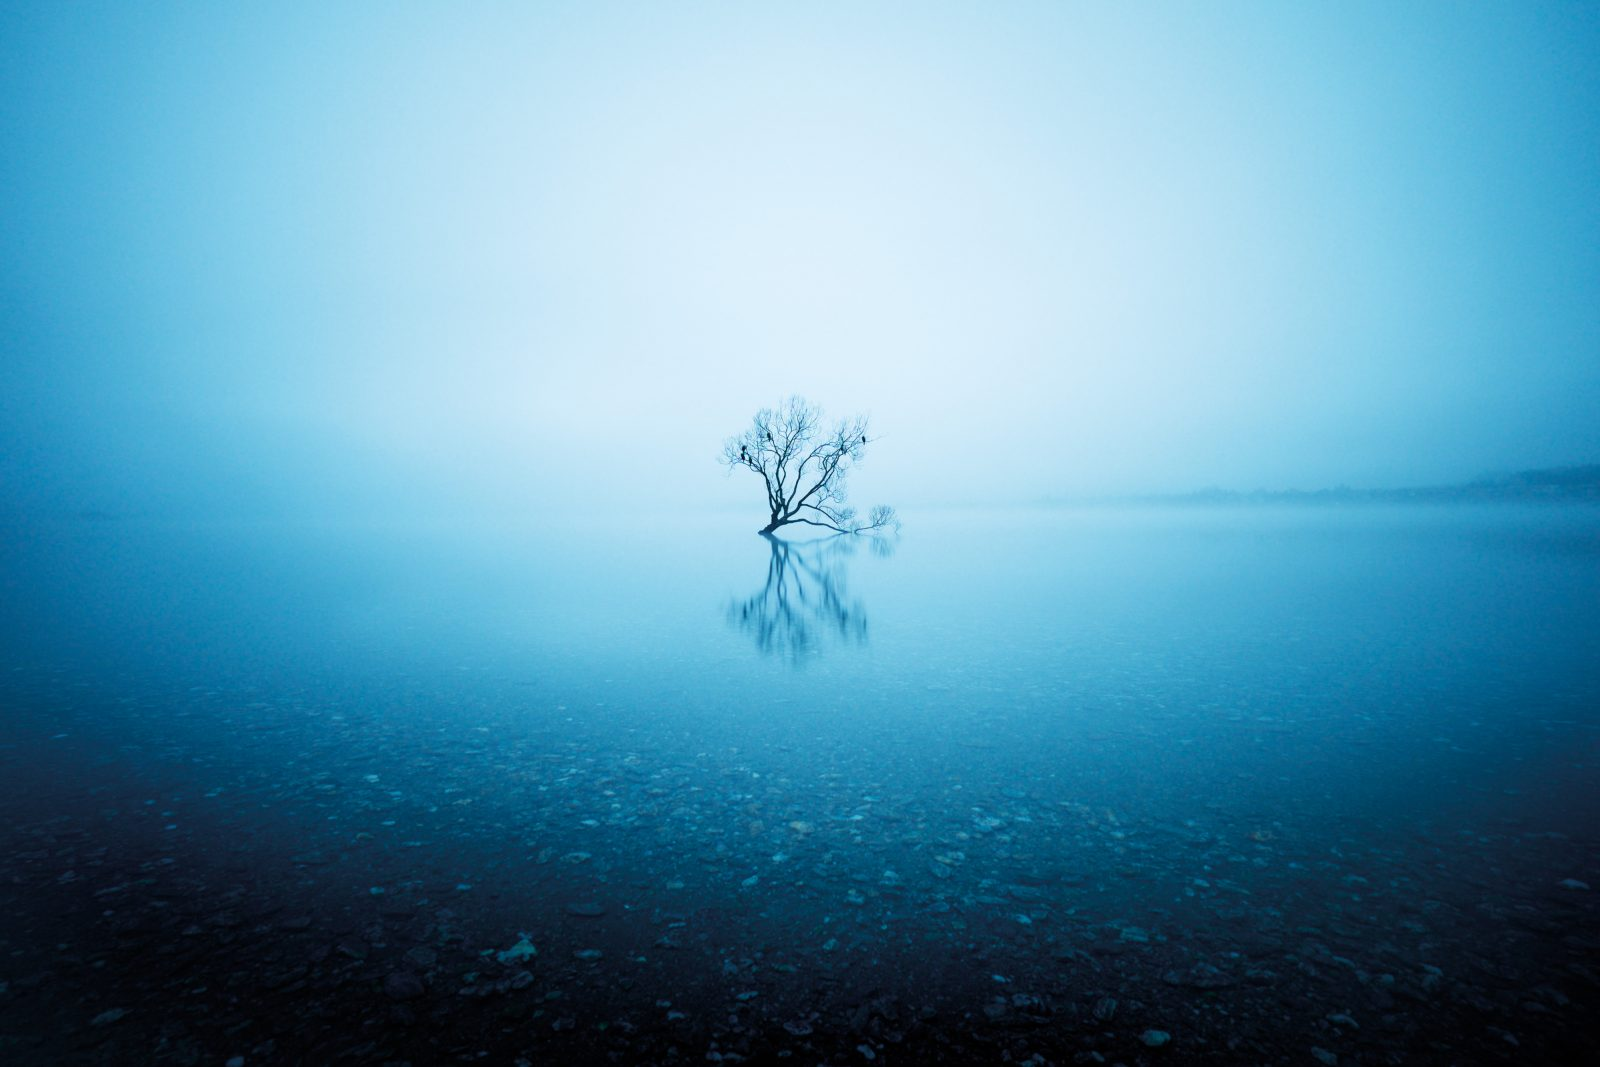 The willow in Lake Wanaka is arguably the most photographed tree in New Zealand, drawing Dennis Radermacher outdoors on a foggy winter's morning. Wetland willows fringe Lake Wanaka and form its distinctive golden backdrop, but only one stands in the water. 'The Lone Tree' has weathered the lake's rises and falls for at least 20 years; its bare branches offer a resting place for shags.